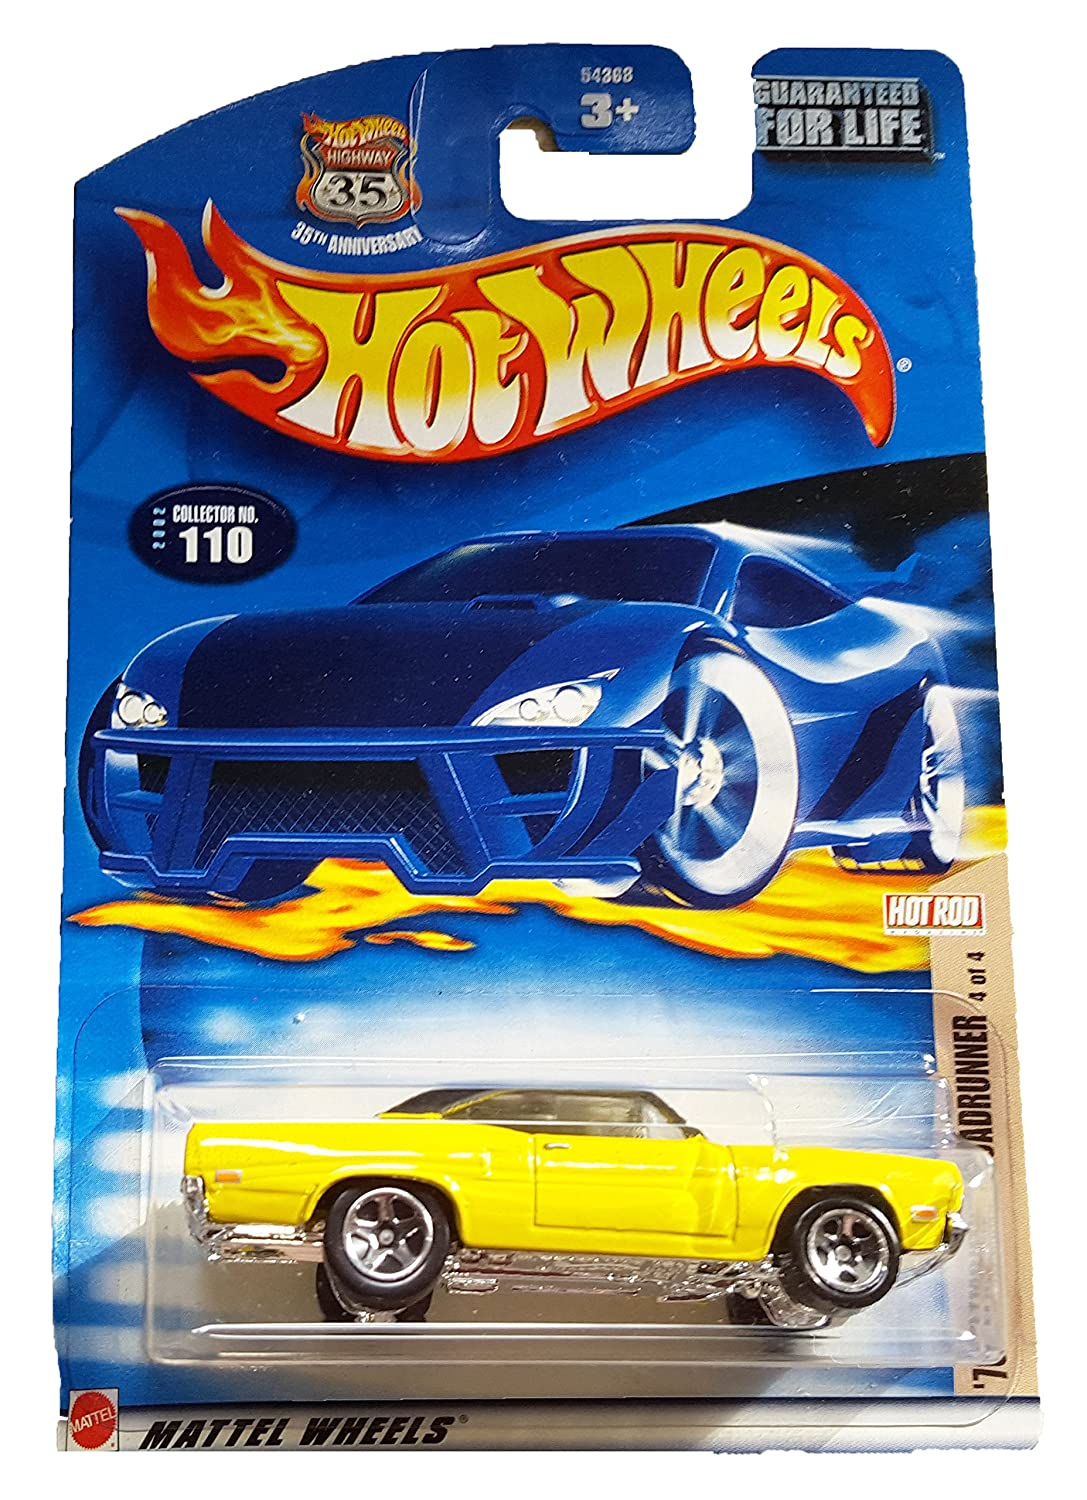 Hot Wheels 2002-110 Hot Rod Magazine Series  4 4 4 1970 Plymouth Roadrunner 1:64 Scale 00f099